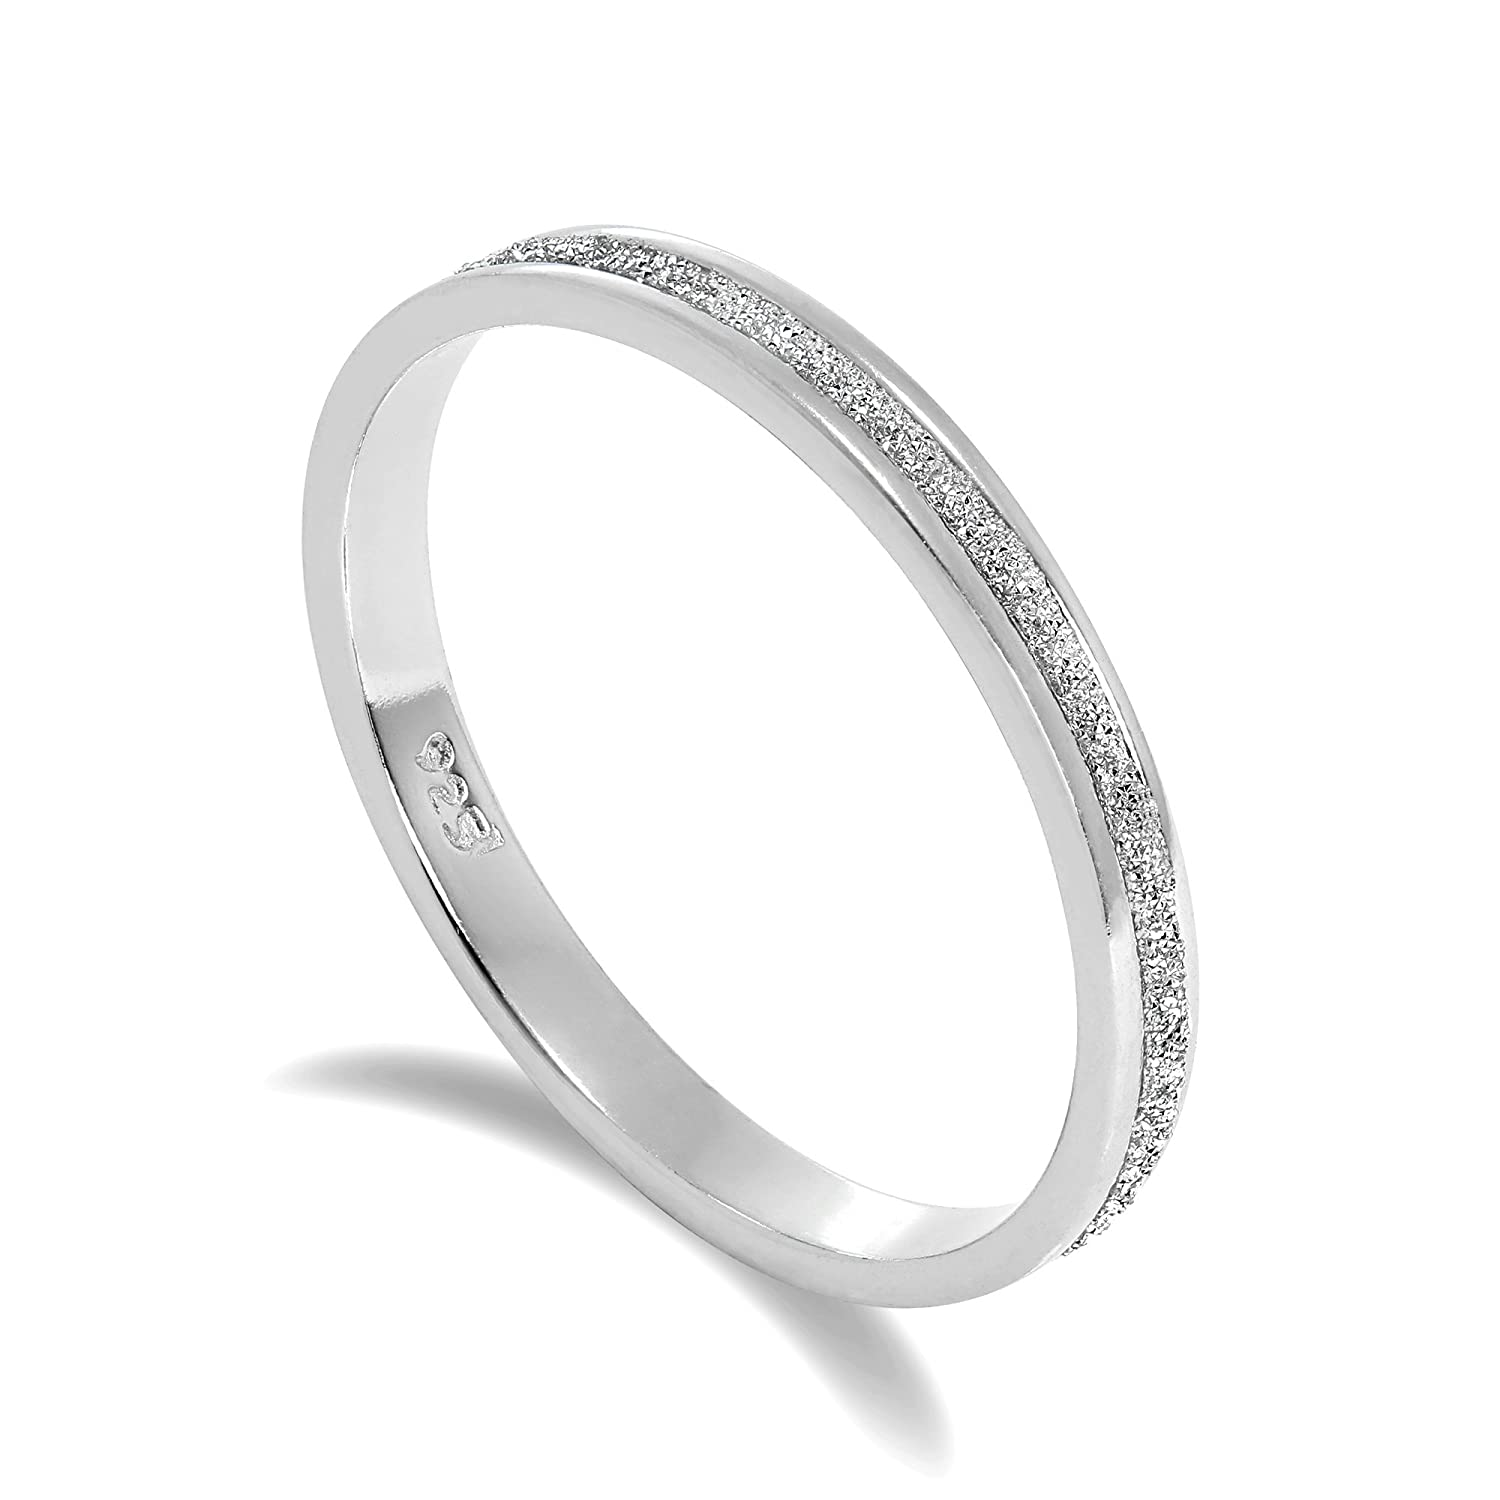 Frosted Sterling Silver Full Eternity Ring Size I - W jewellerybox HAR-0635